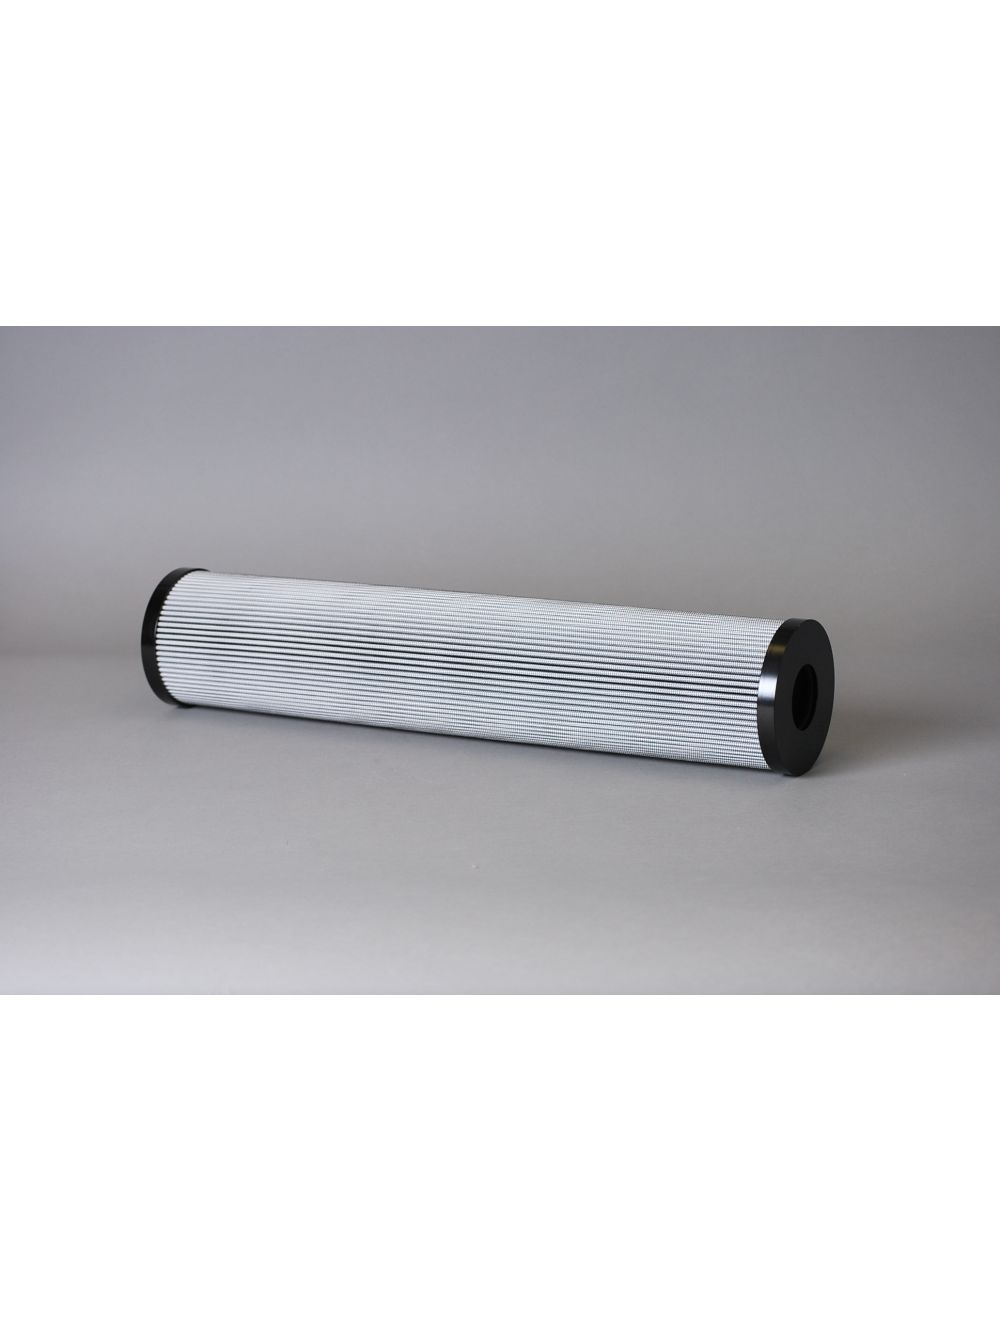 10Mb hy-pro hpq96104l10-10mb replacement filter